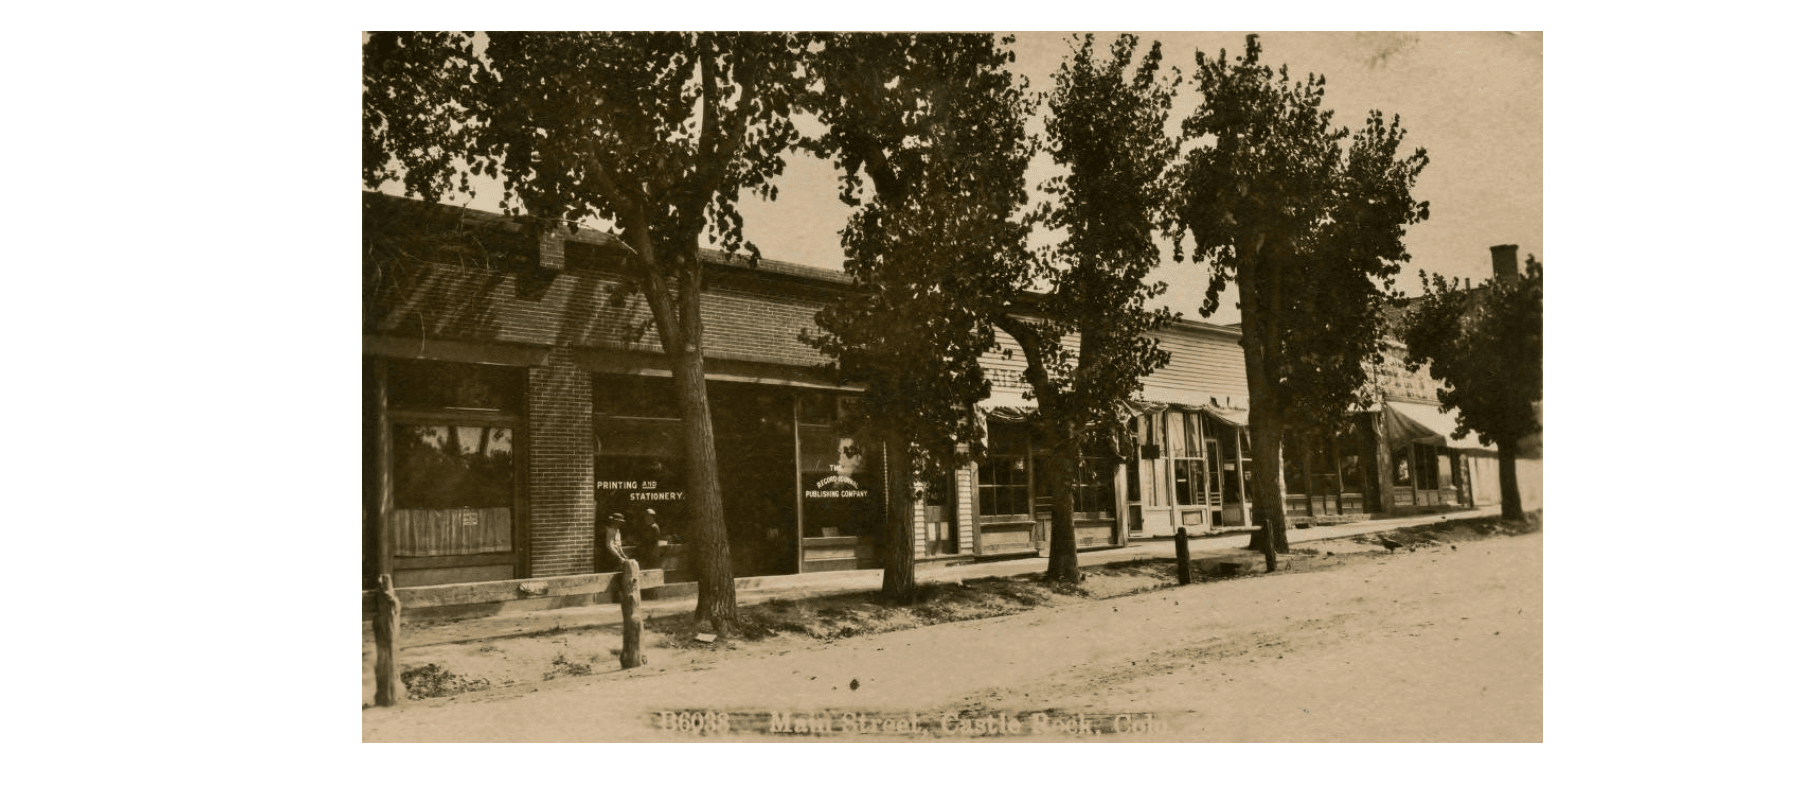 The 300 block of Wilcox Street before the road was paved, between 1900 and 1910.